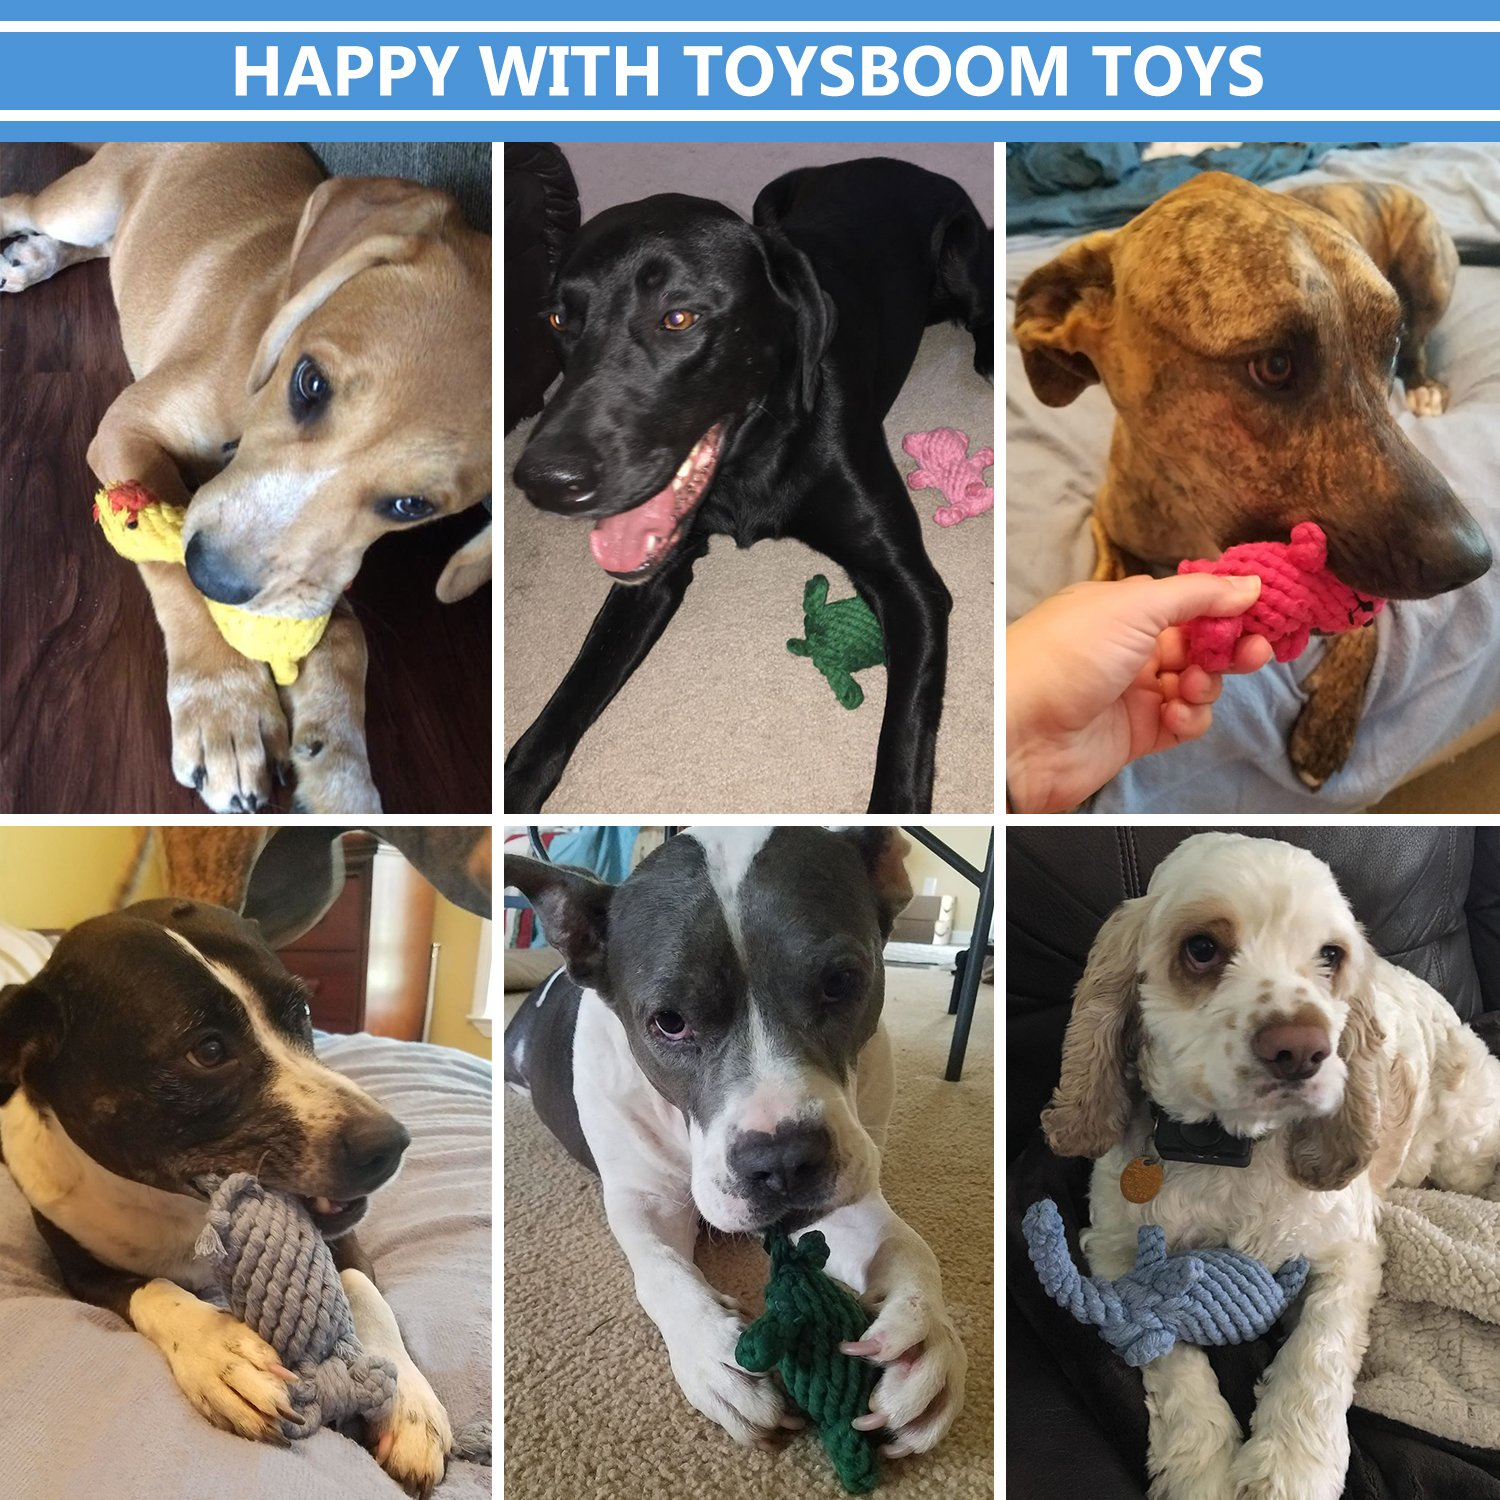 Dog Rope Toys Cute Animals Design, Cotton Puppy Toys for Small Dogs. Rope Dog Toy Set pack of 6 by TOYSBOOM (Image #6)